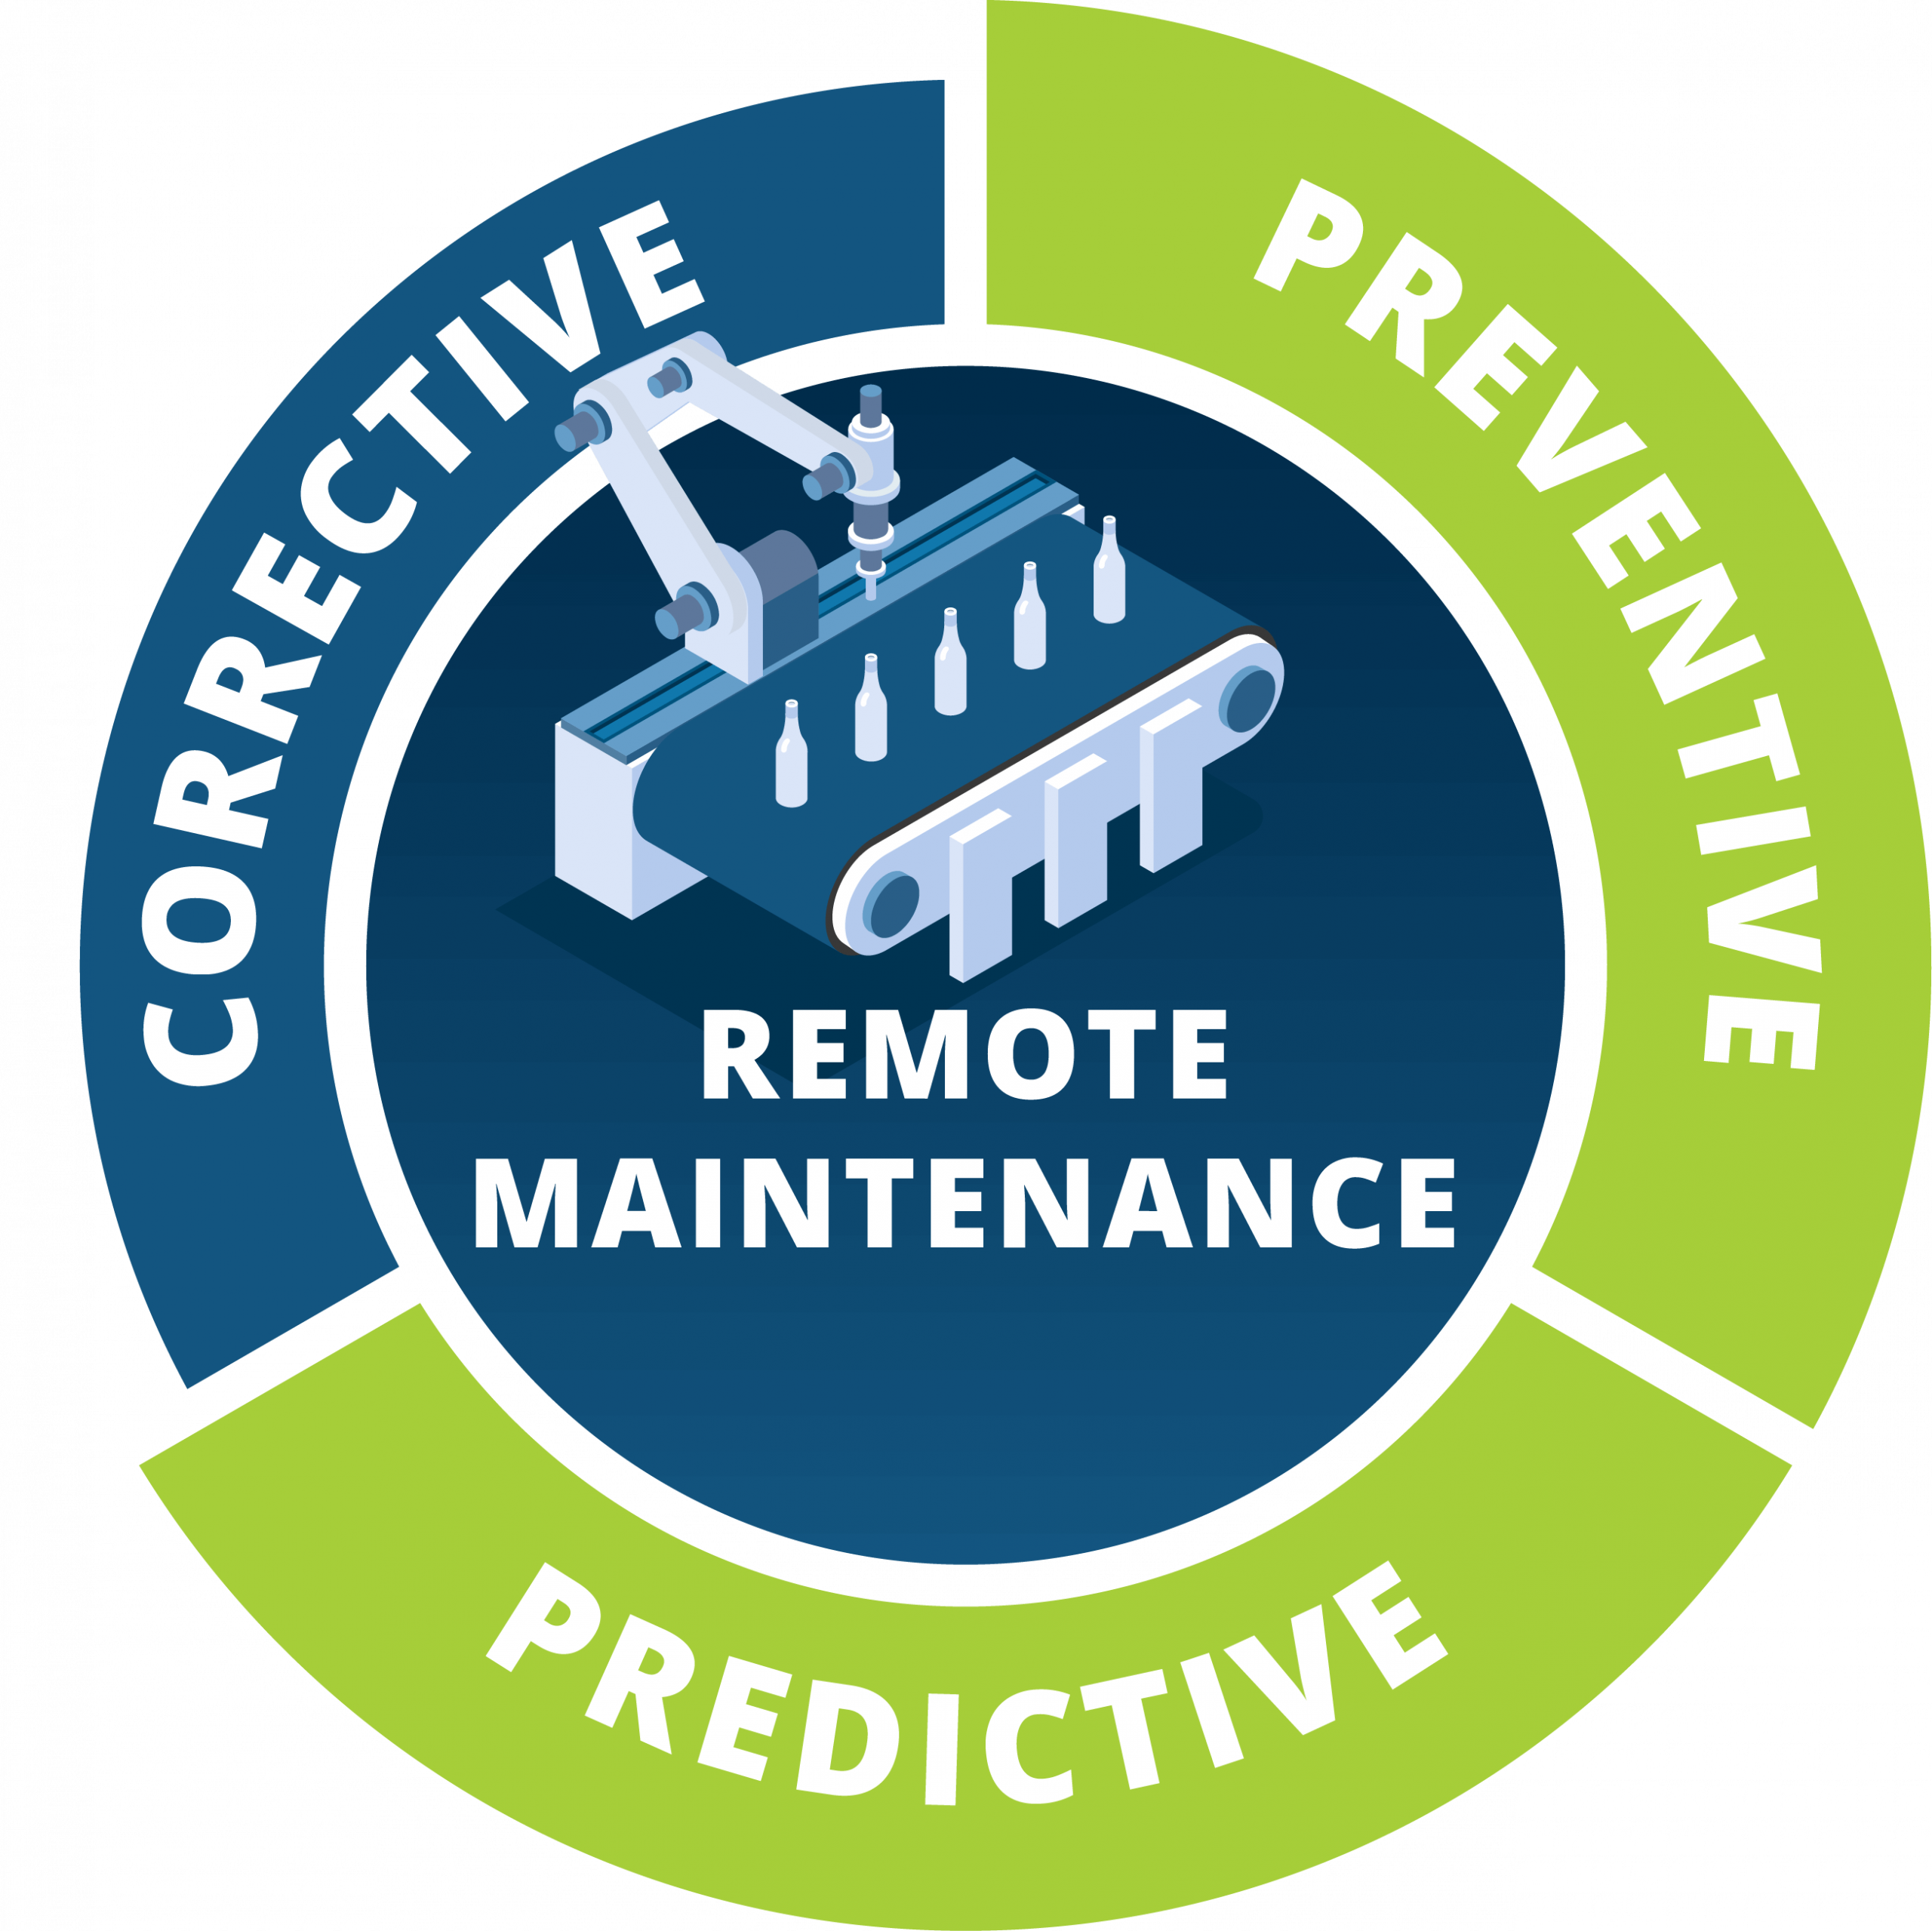 Prevent unplanned downtime and predict failures with machine data collection